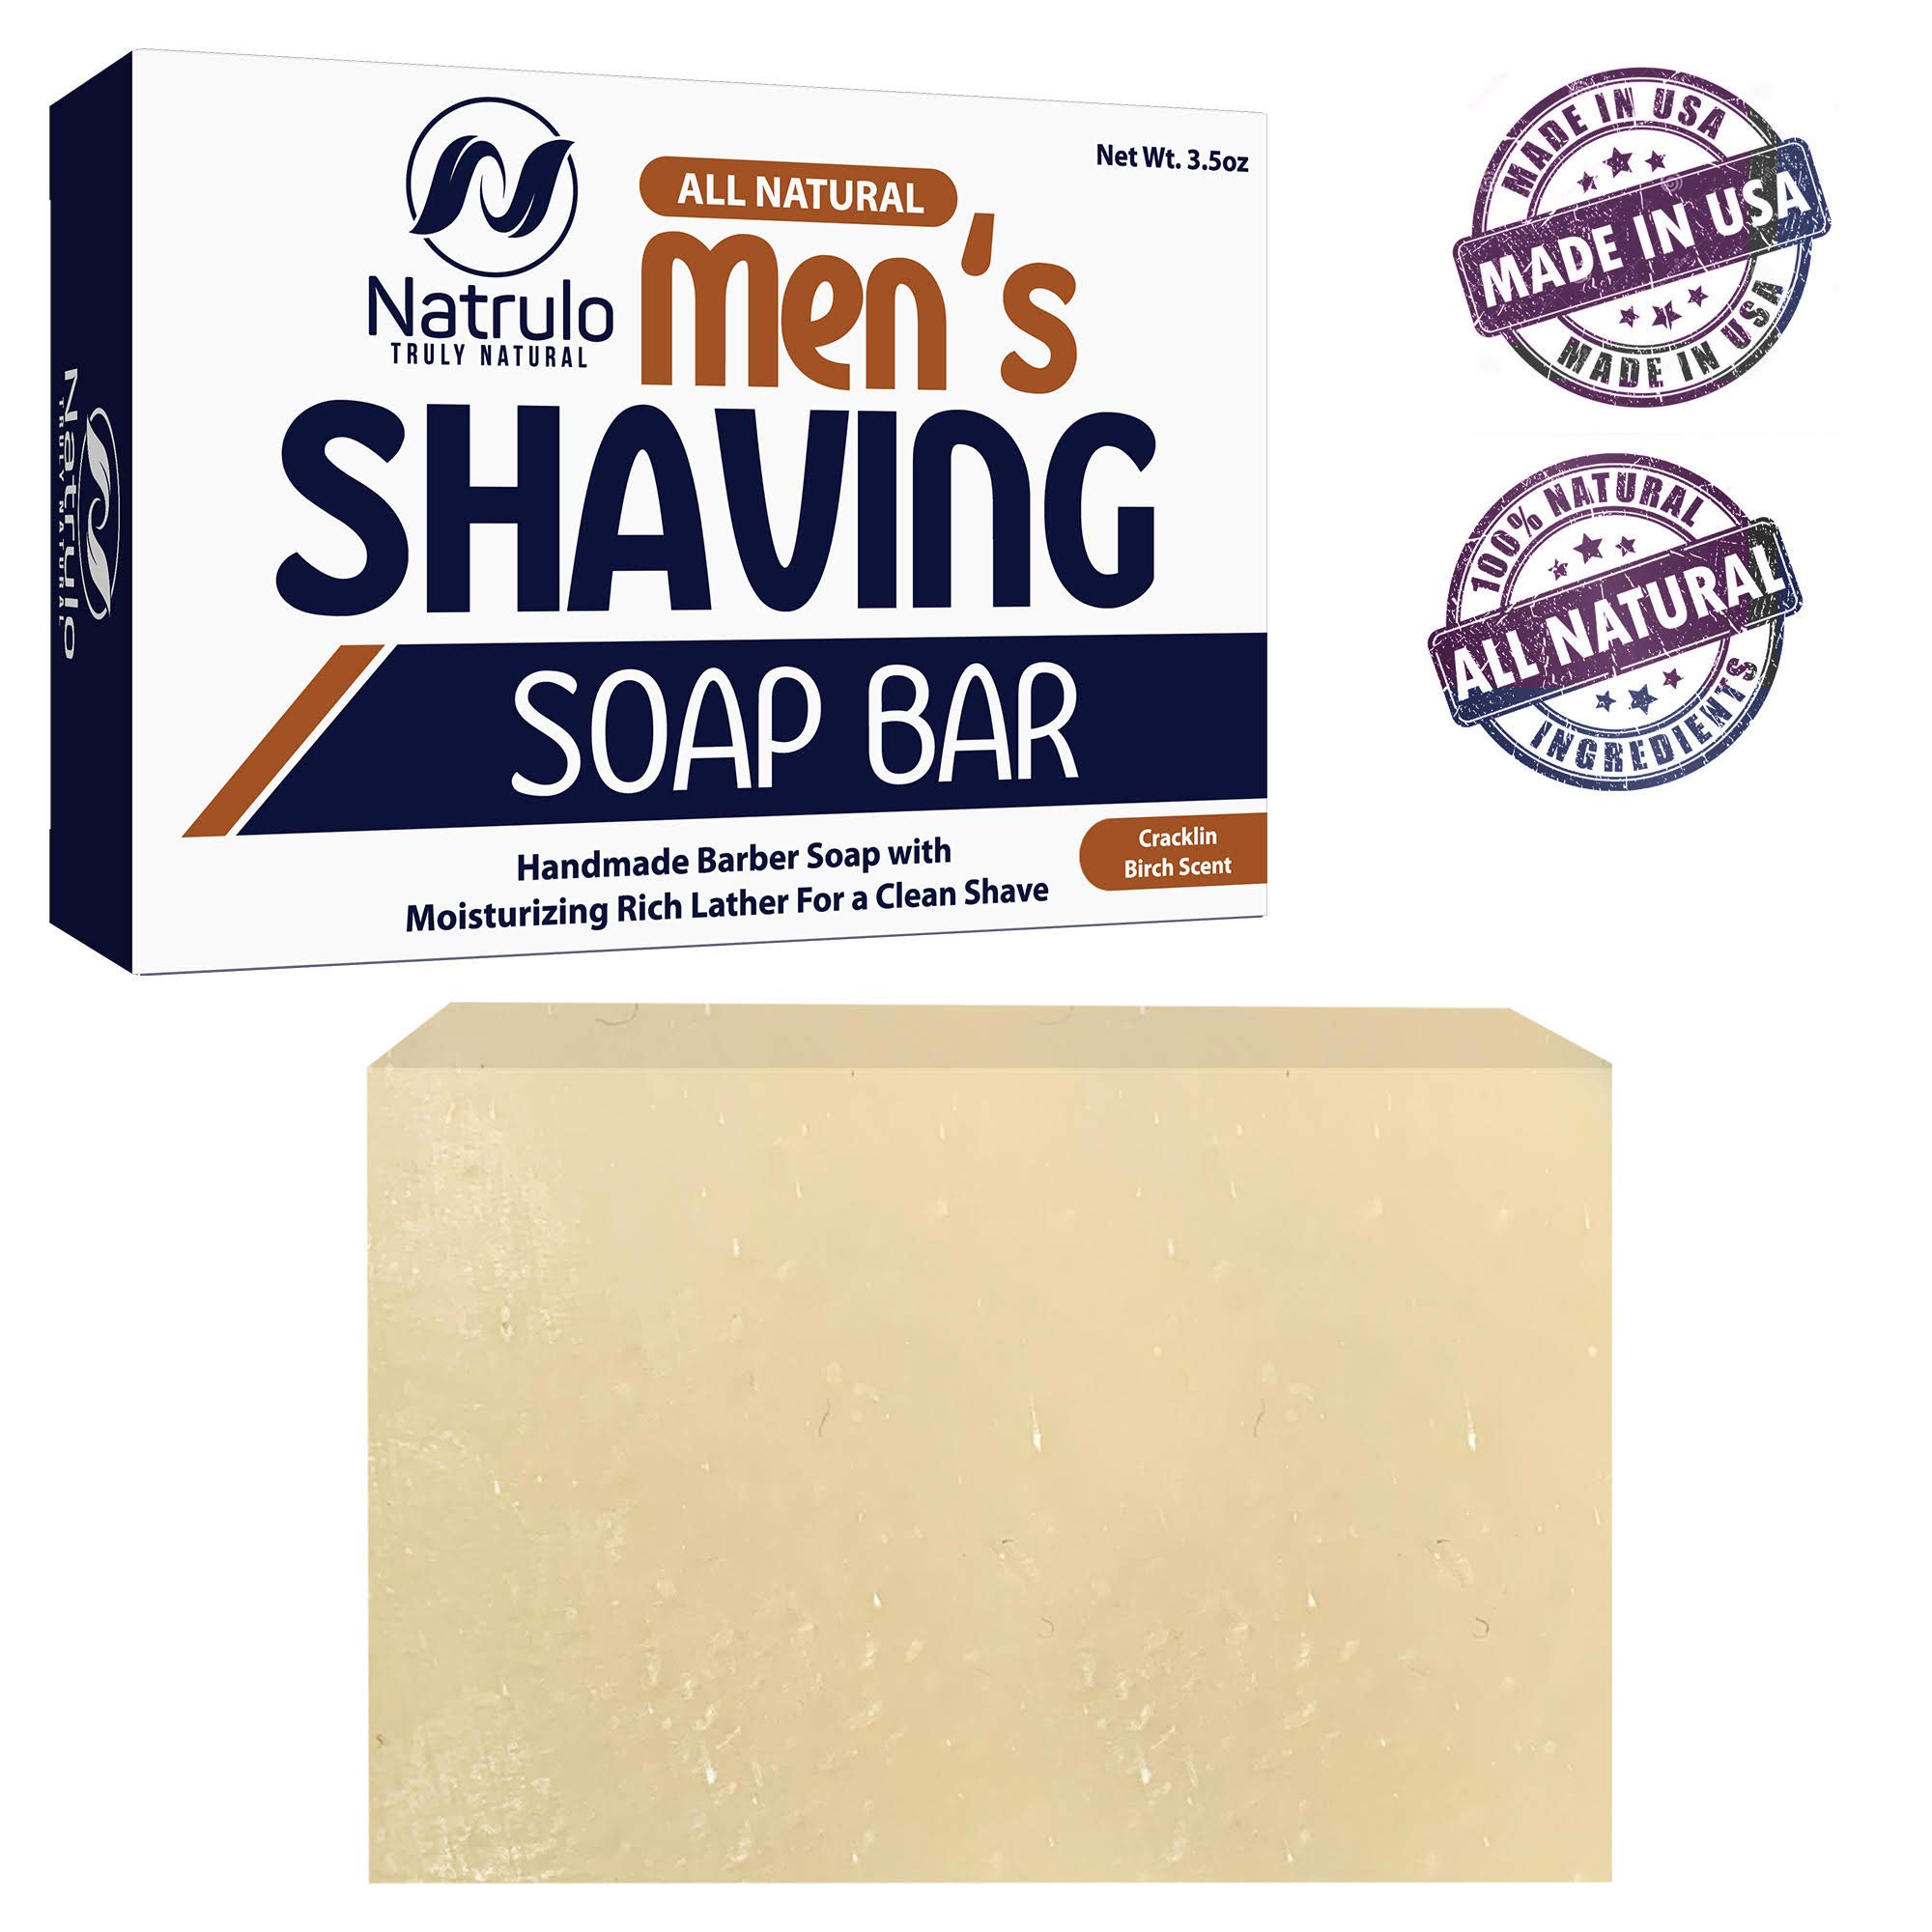 Men's All Natural Shaving Soap Bar - Moisturizing Rich Lather Handmade Barber Soap with Detoxifying Bentonite Clay, Soothing Shea Butter, Exfoliating Colloidal Oats - For Clean Shave, Reduces Redness